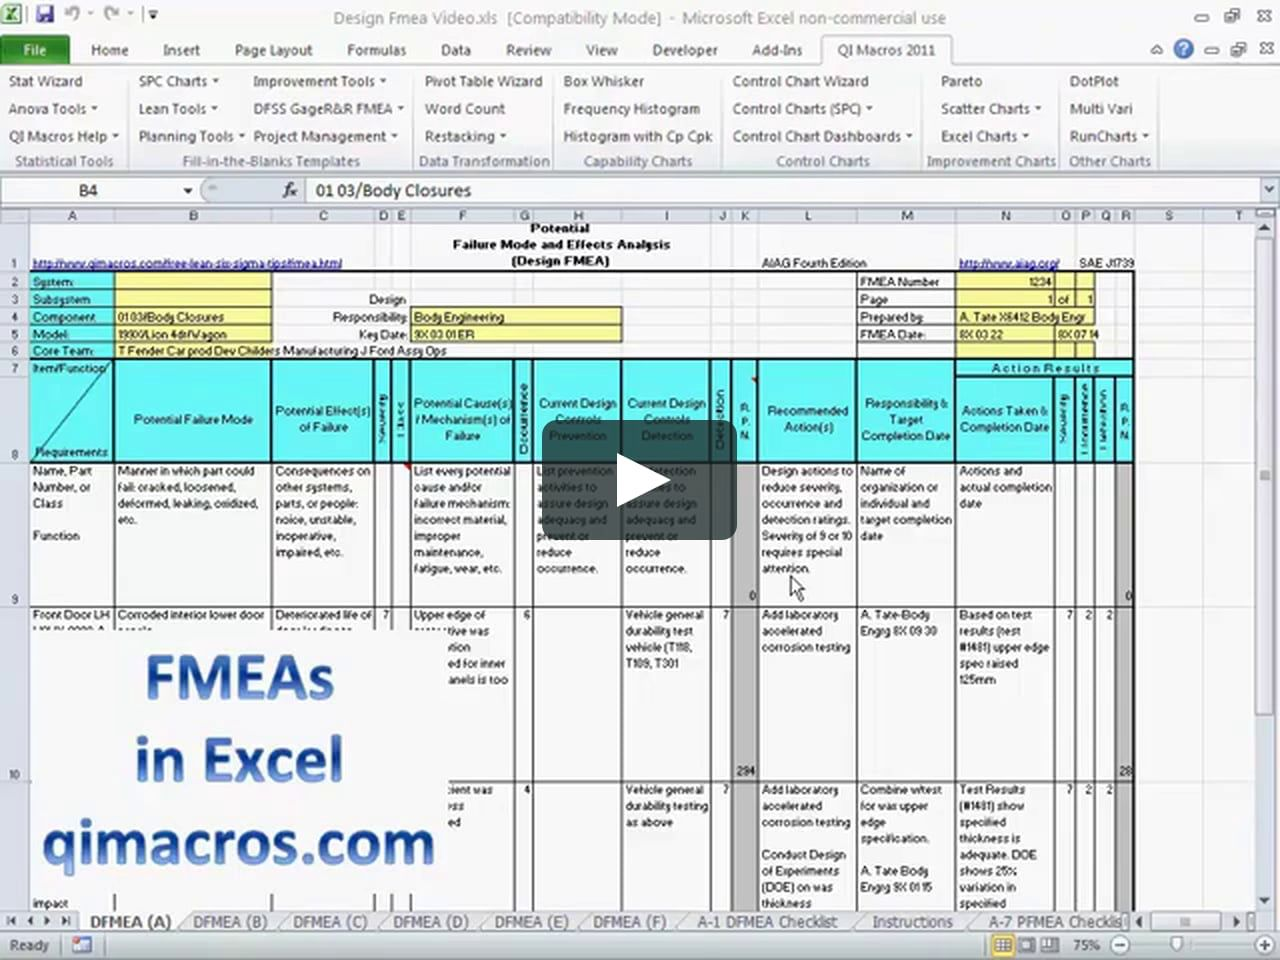 Simplify Failure Mode Effects Analysis Using The Qi Macros Lean Six Sigma Spc Software For Excel Pareto